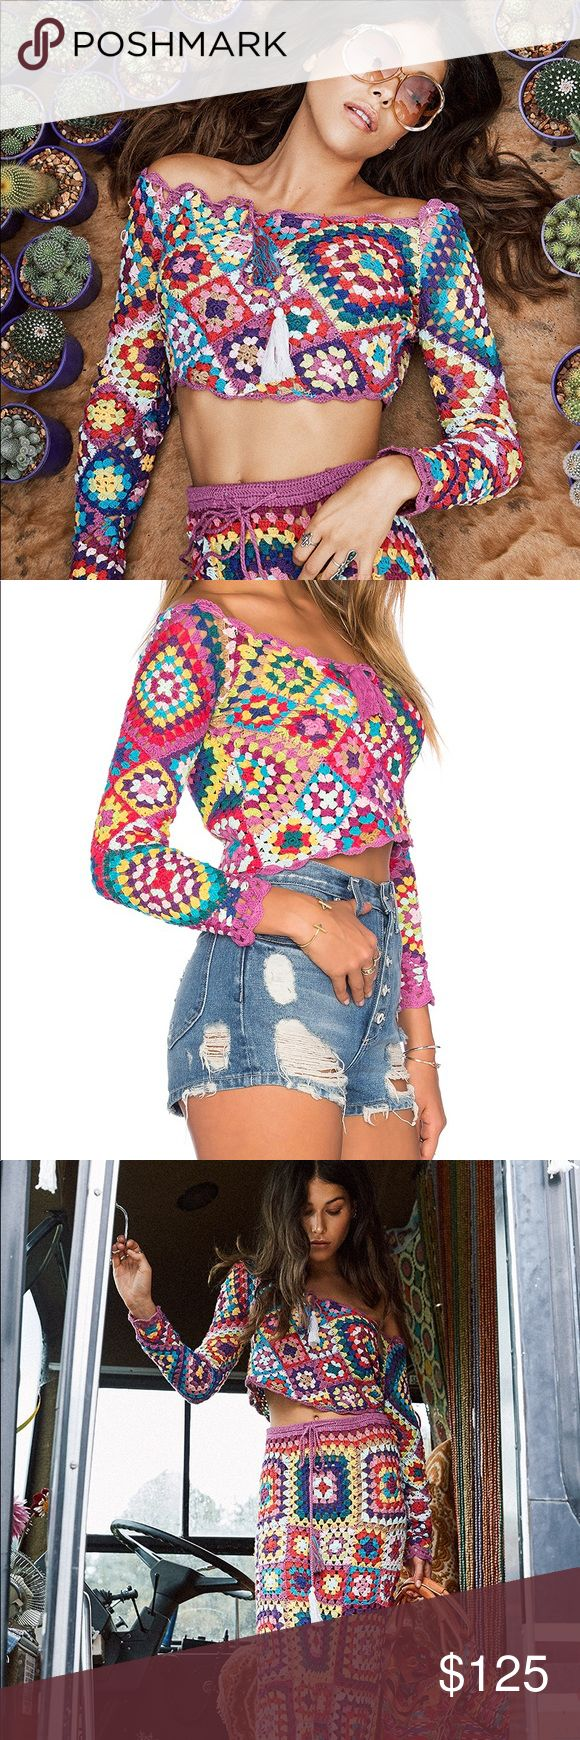 spell & the gypsy carnaby crochet crop top WILL SELL CHEAPER ON OTHER APPS. PRICE REFLECTS POSH FEES. worn once spell designs carnaby crochet crop top. rare item, super cute, flattering, off the shoulder granny square crochet style. tag says size M/L, but i think it can fit smaller or larger body types- i wear XS in most clothes and it fits me fine. (3rd pic is me wearing it) it has one small hole on right arm, price reflects this. this is my FAVOURITE top in my closet but i don't get to…